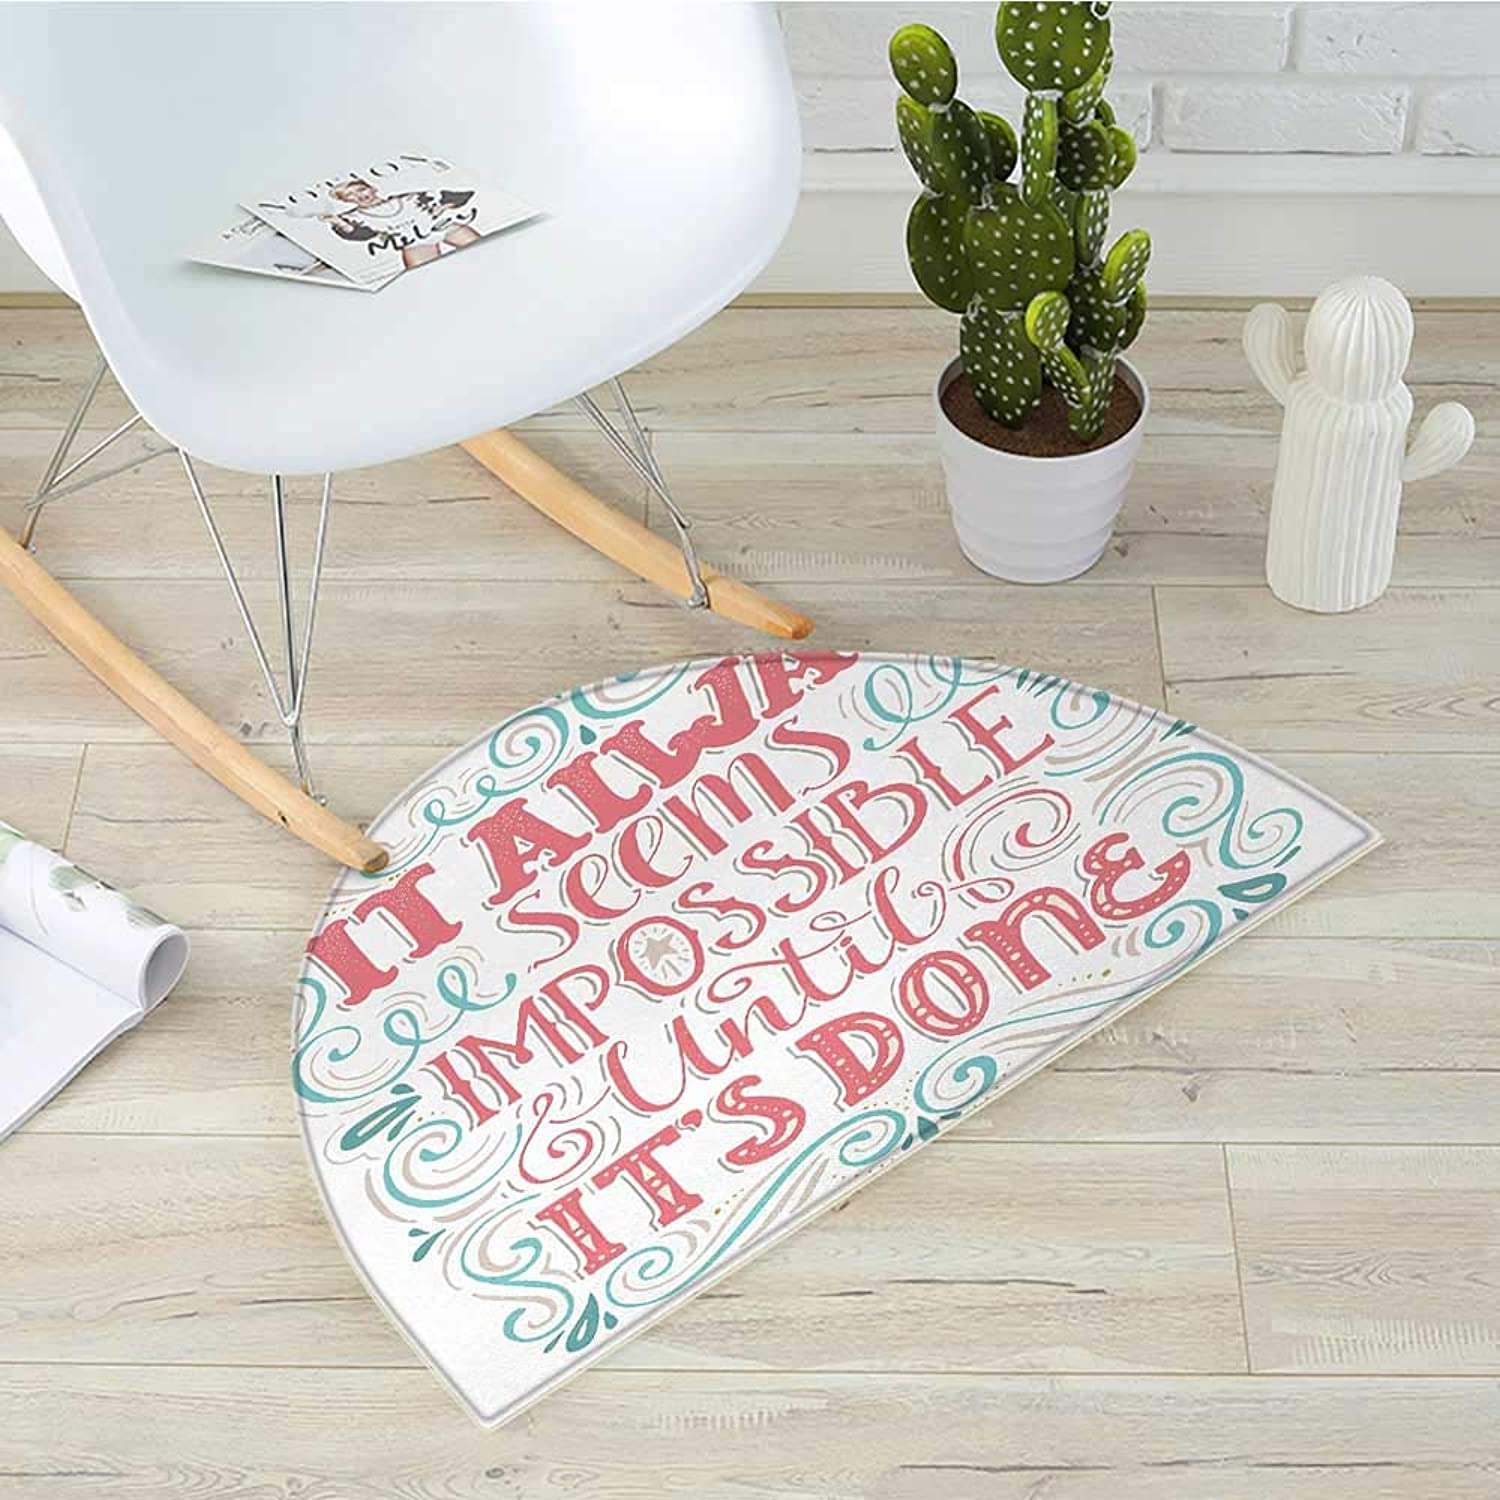 Quote Semicircle Doormat Hand Drawn Swirls and Curls It Seems Impossible Until Its Done Halfmoon doormats H 31.5  xD 47.2  Tan Dark Coral and Pale bluee